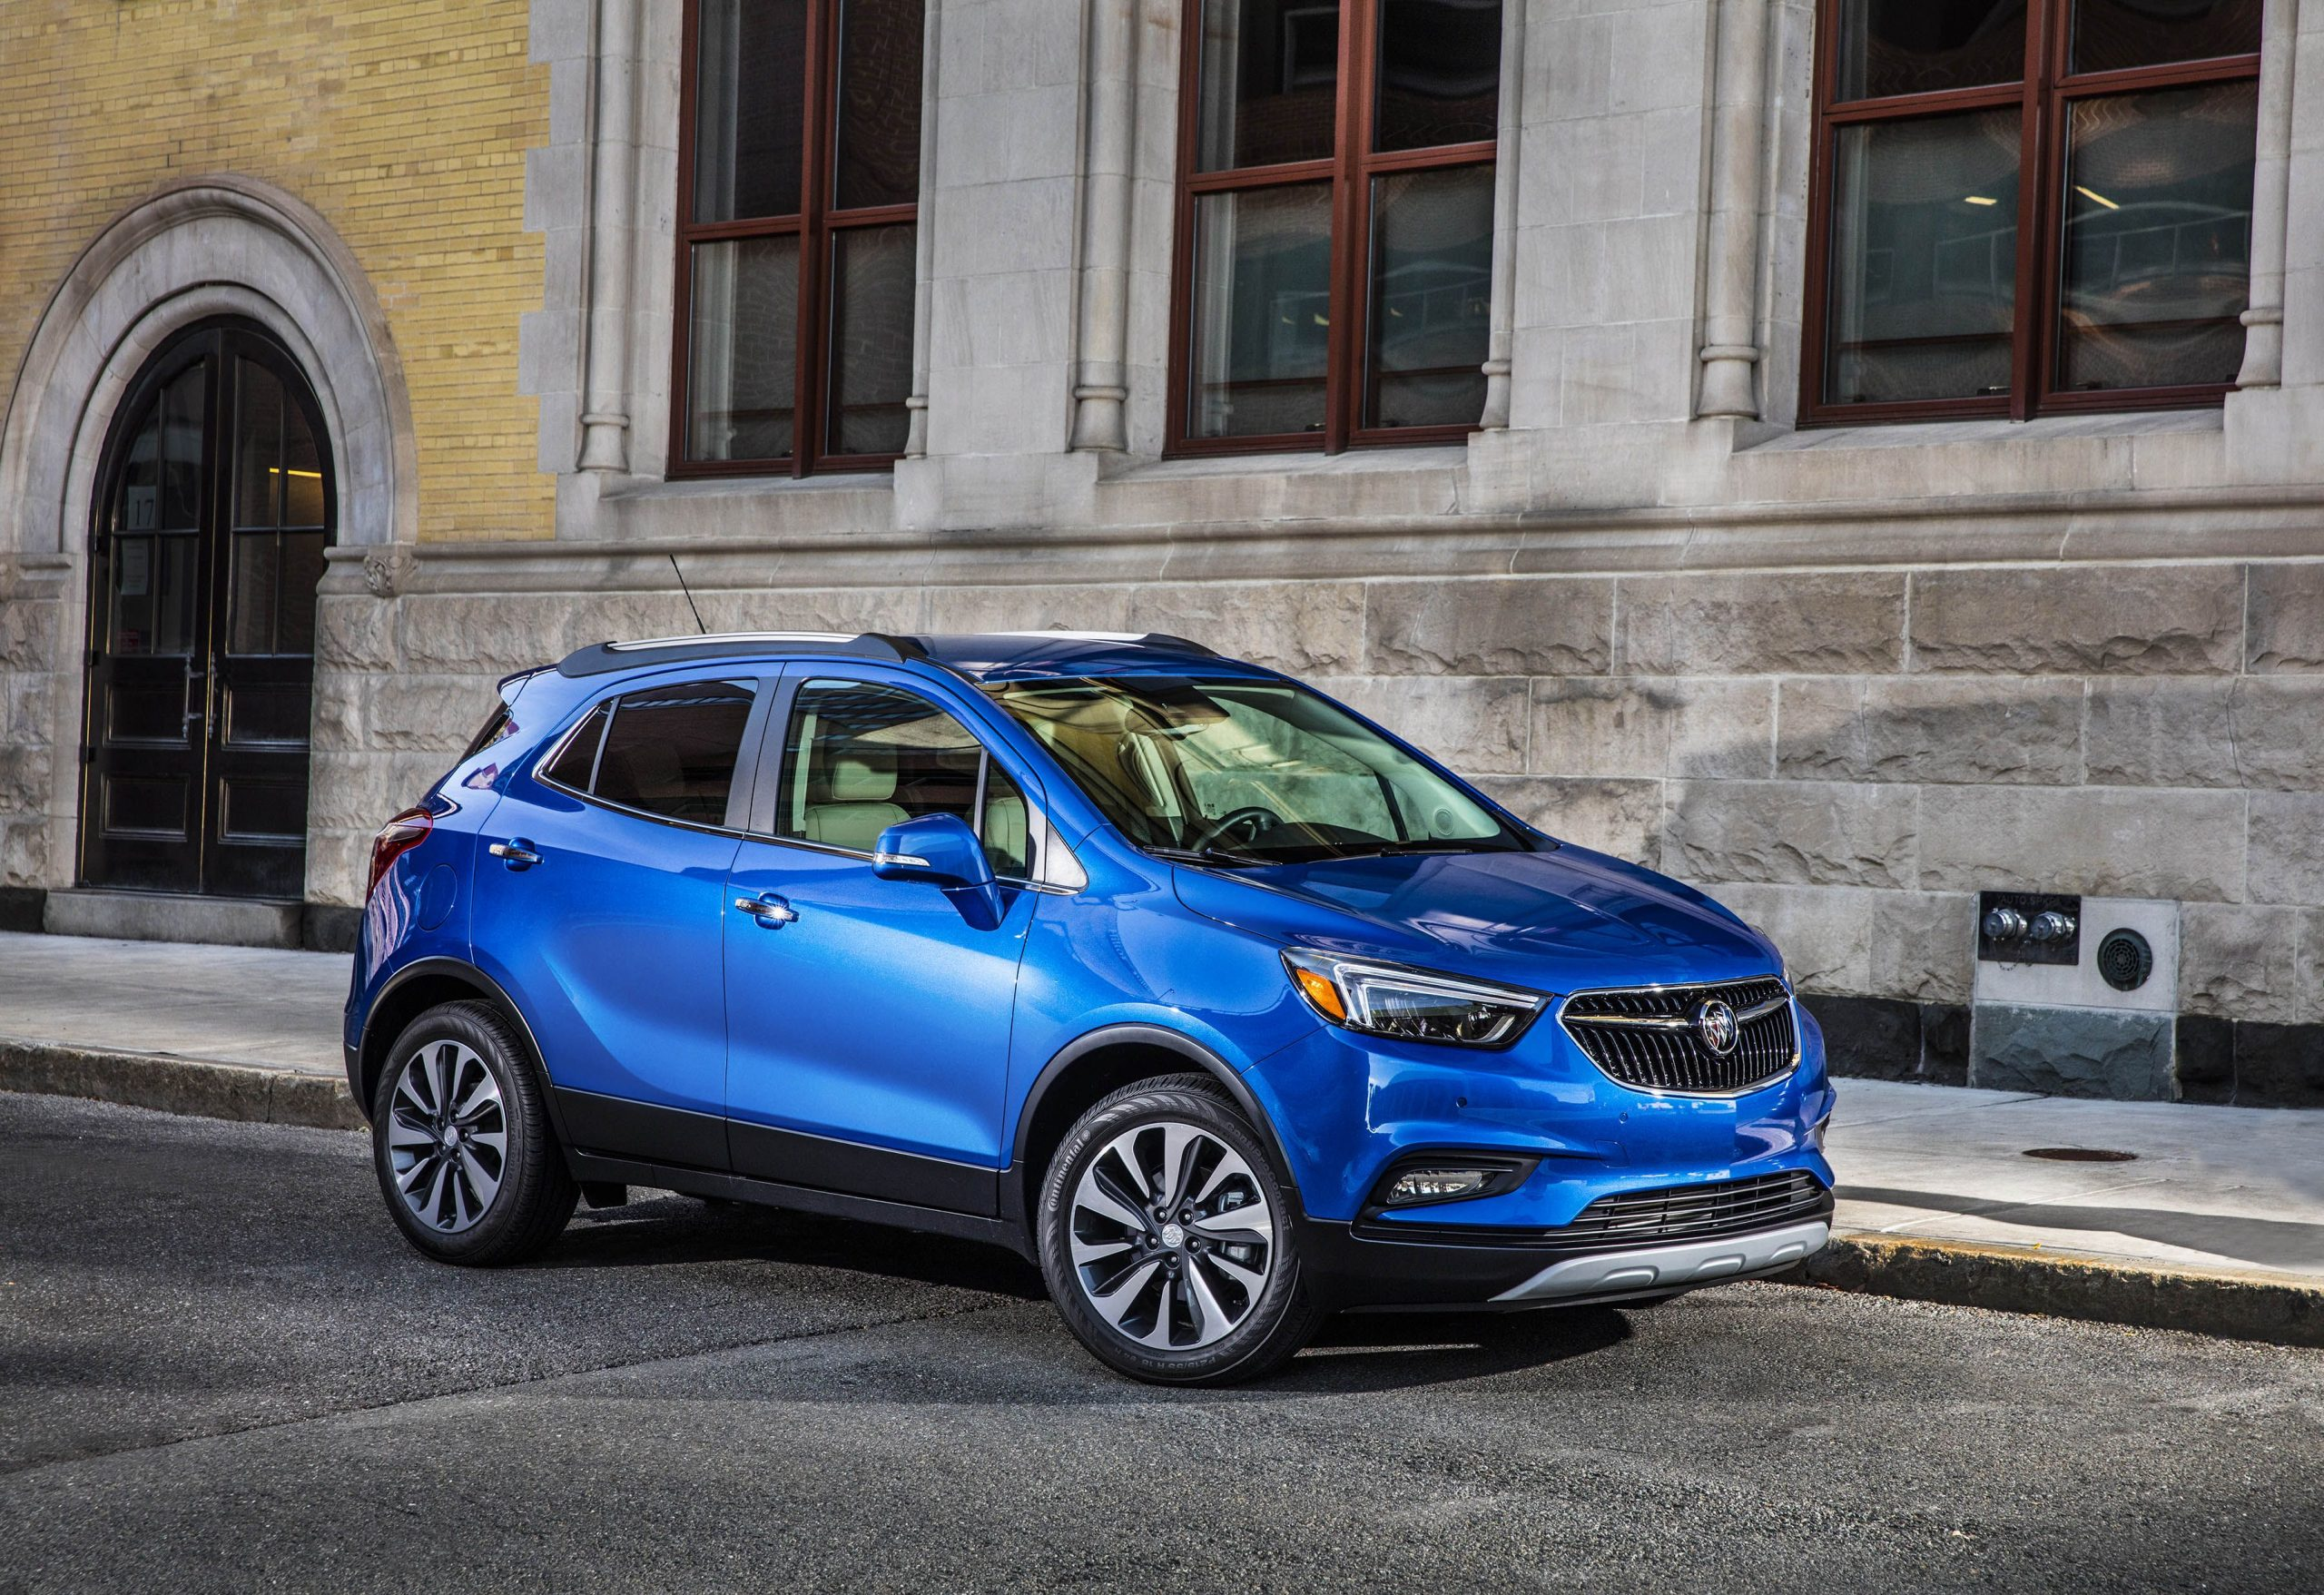 2020 Buick Encore Review, Pricing, And Specs New 2022 Buick Encore Problems, Specs, Safety Rating